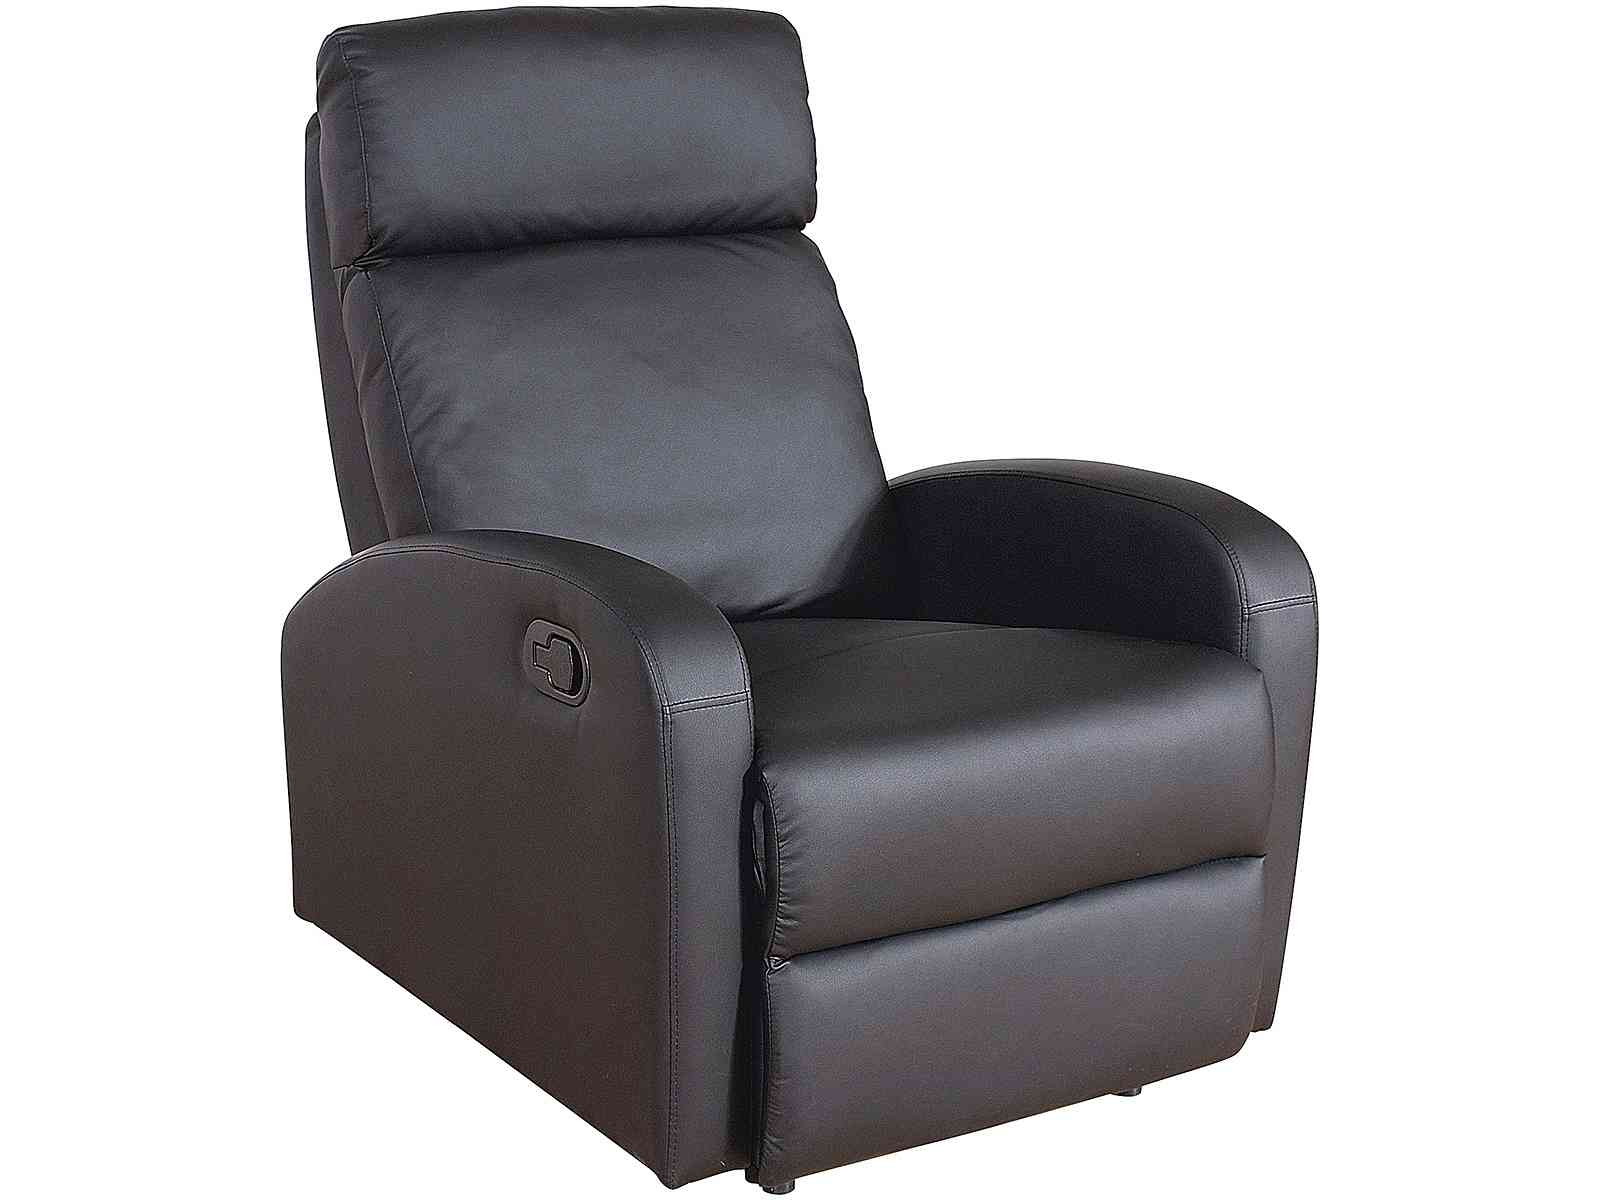 Recliner Chairs Ottawa Gfw The Furniture Warehouse Nevada Recliner Chair